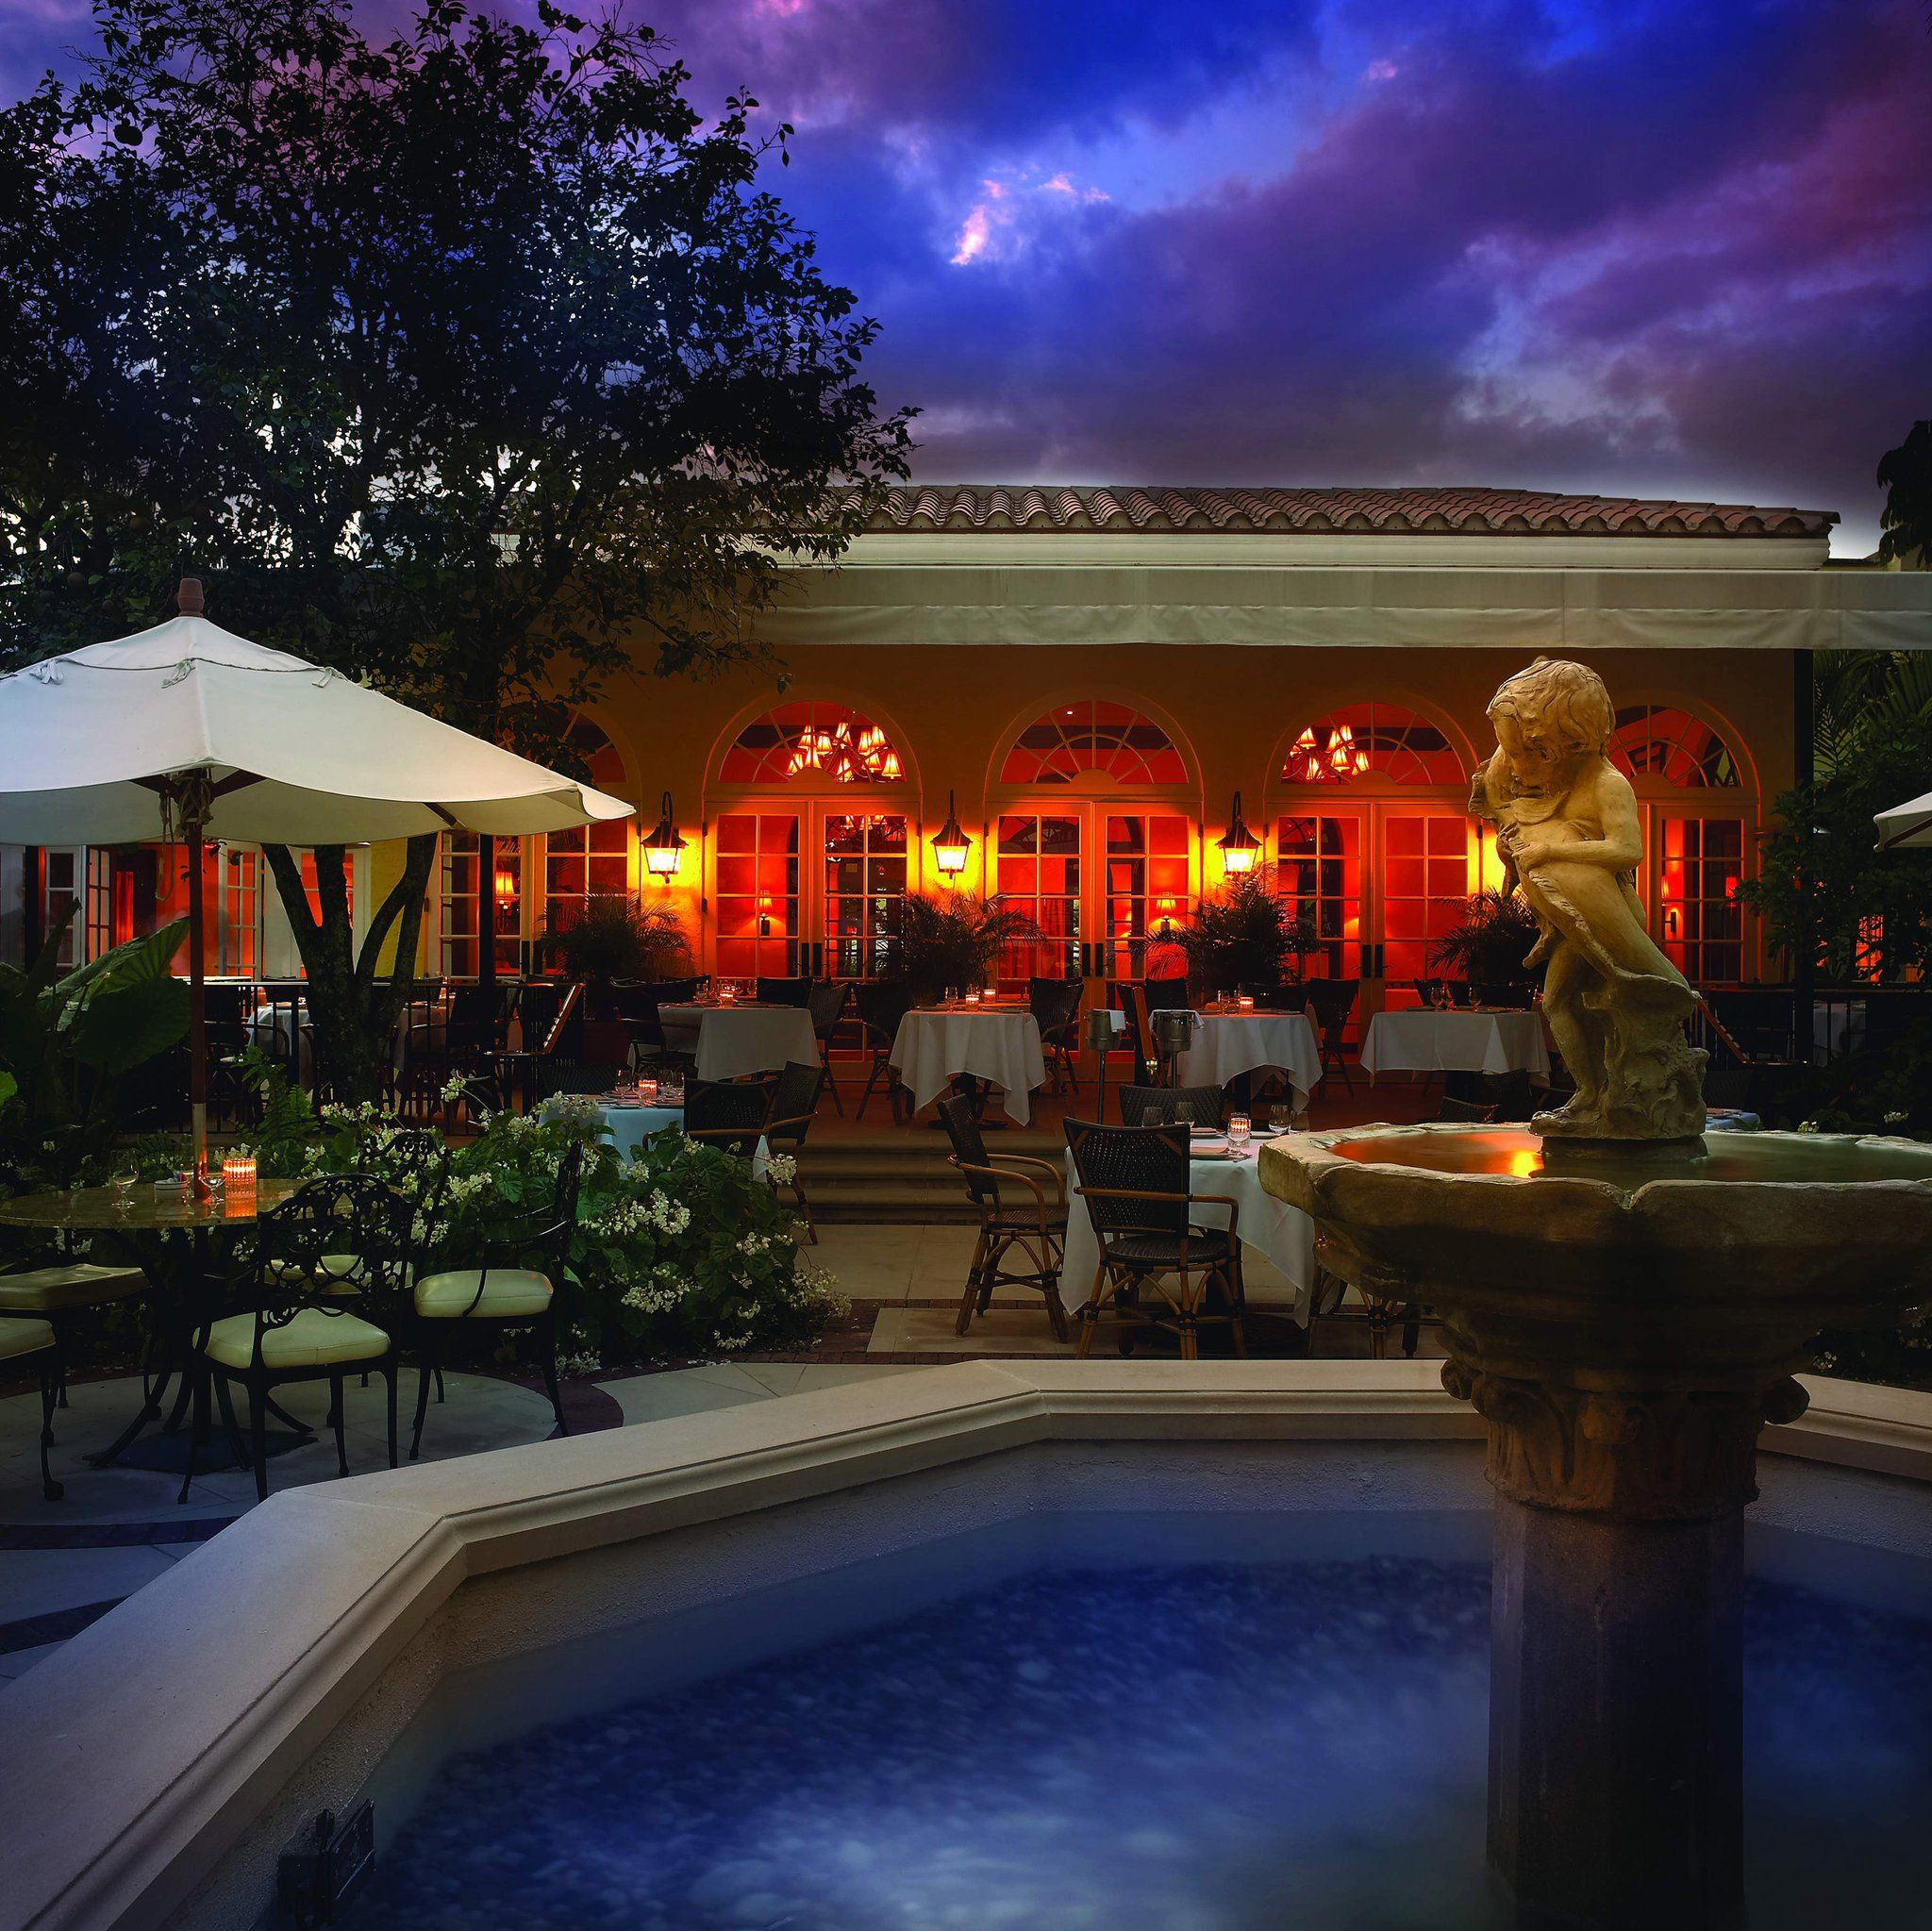 On Friday evening the festive tone is set by Daniel and Friends, hosted by acclaimed chef Daniel Boulud in the glittering Fountain Courtyard and Terrace of Café Boulud Palm Beach. #pbfwf2012